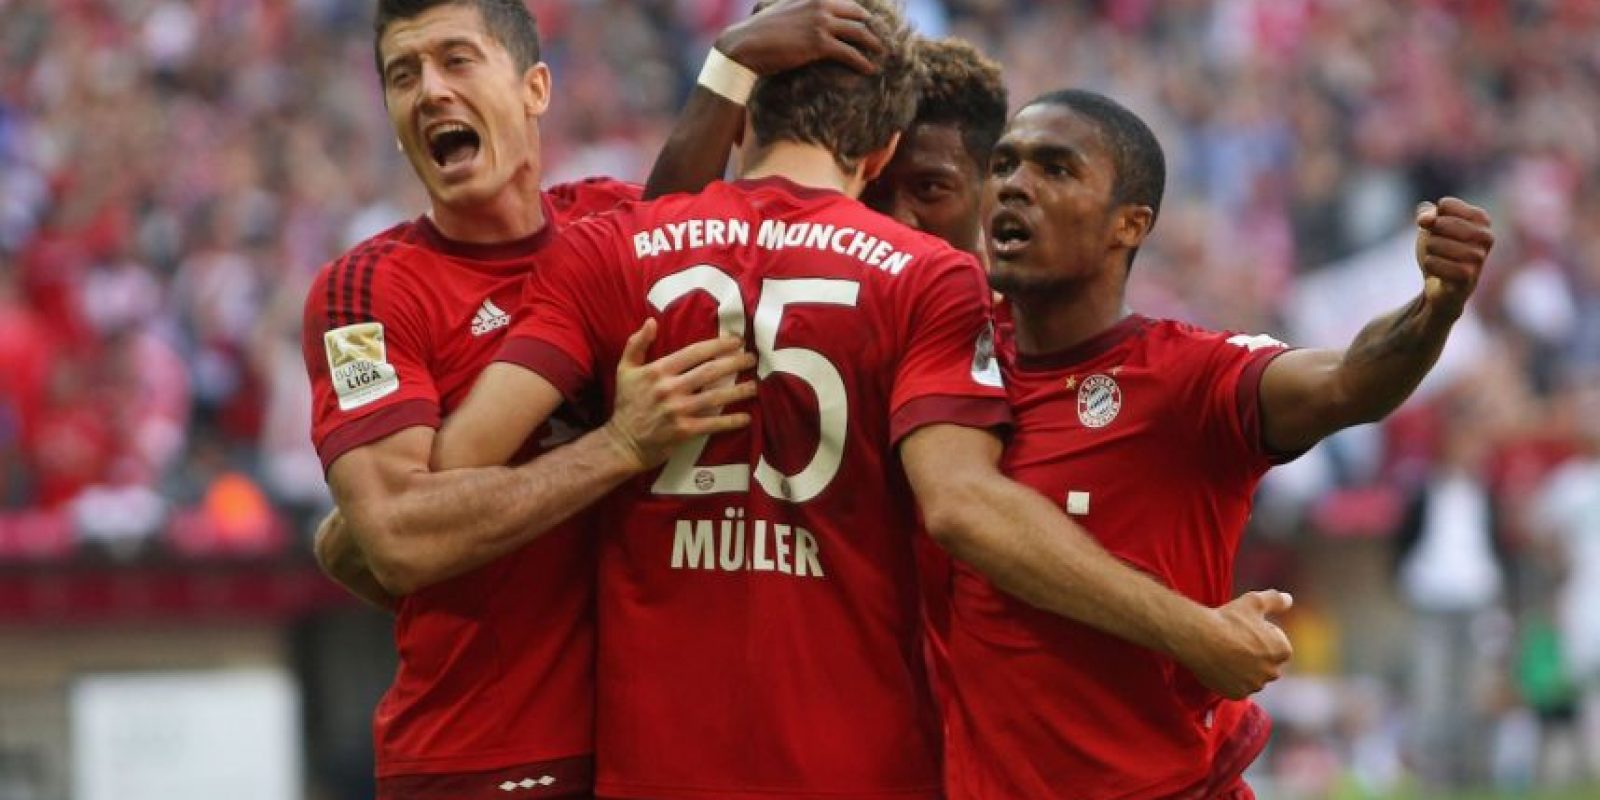 3. Bayern Munich (Alemania) / 559.25 millones de euros. Foto: Getty Images